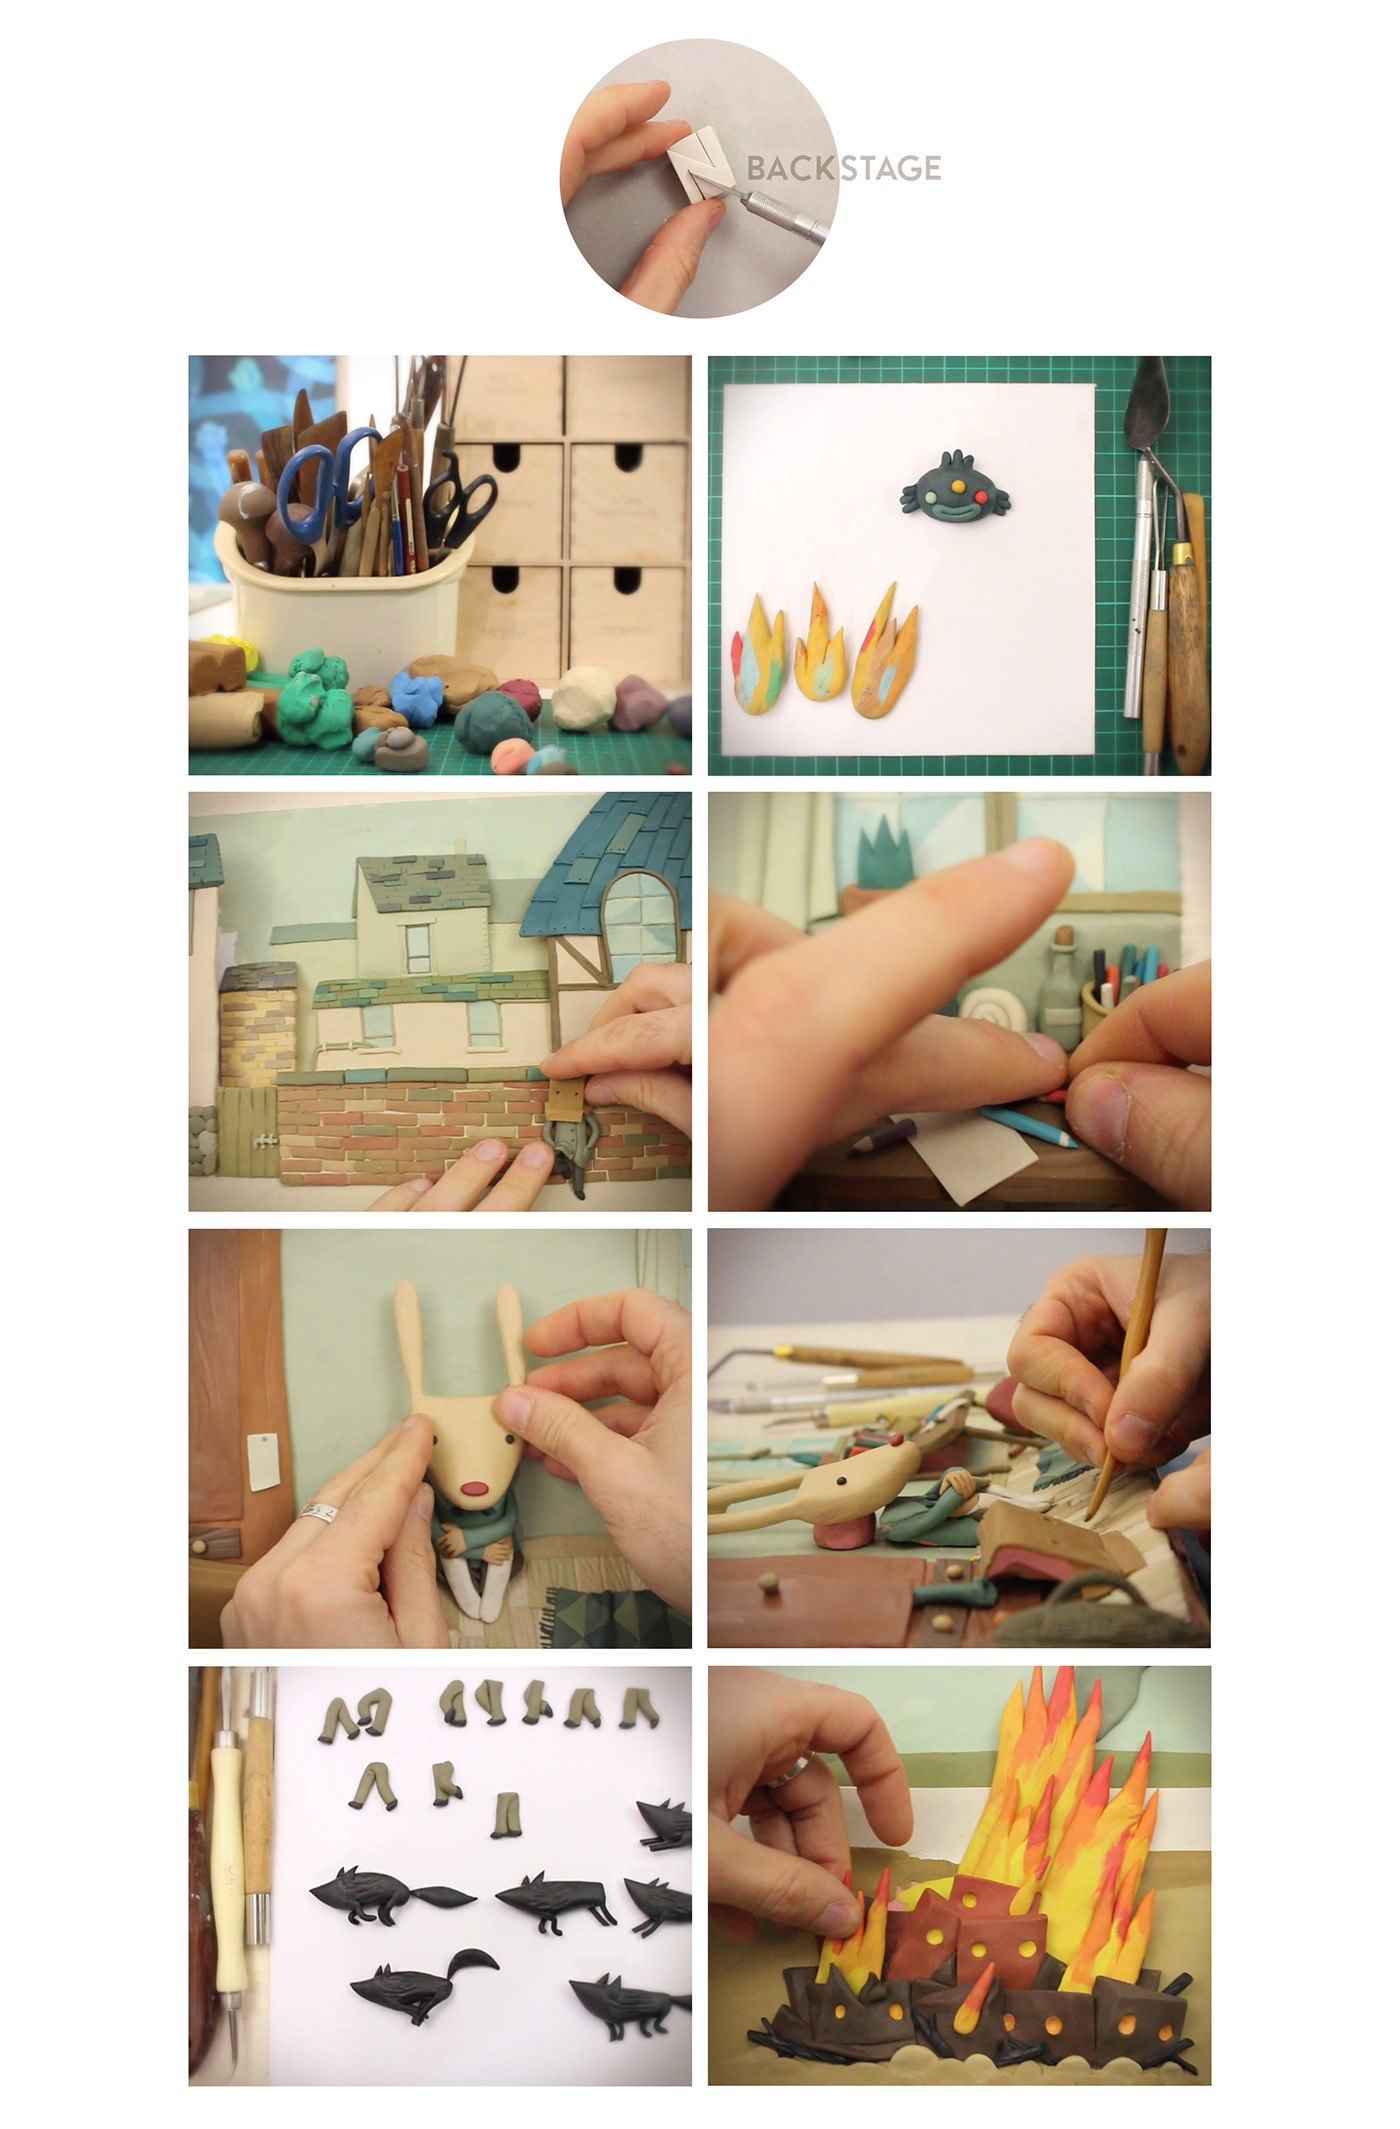 claymation   Plasticine stop motion animation  music video gianluca maruotti puppets